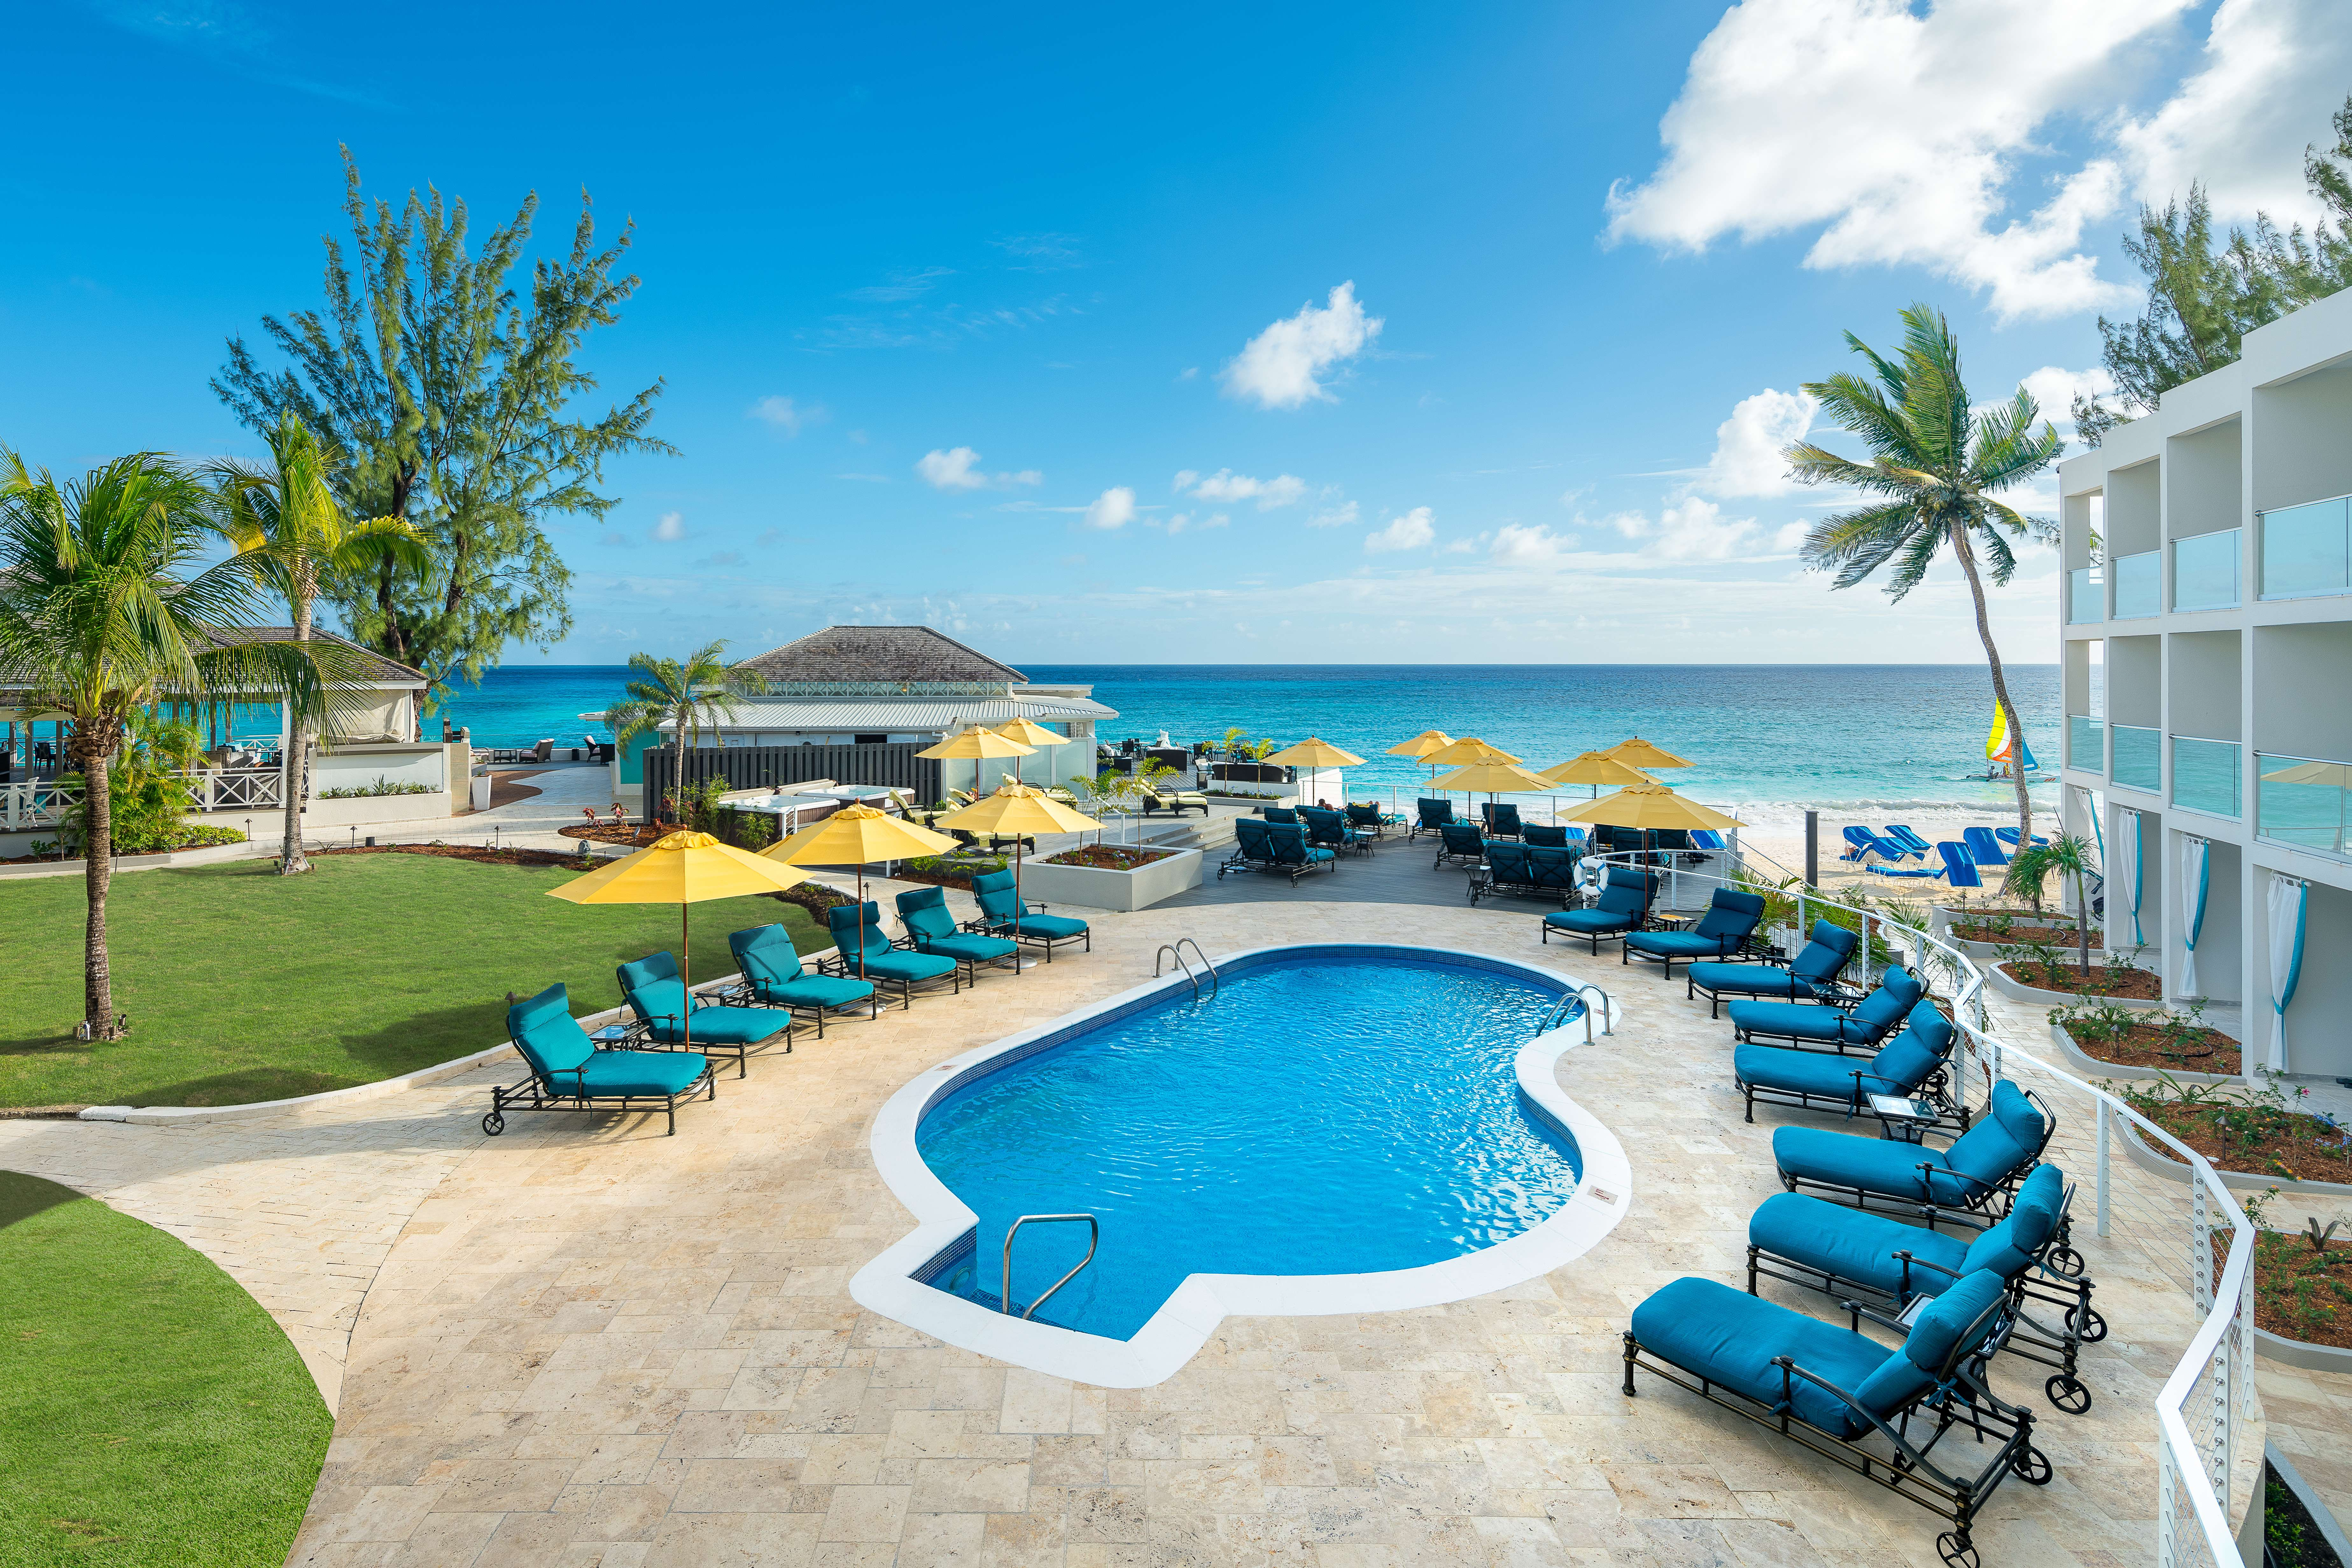 Barbados break with FREE Room Upgrade - Save 33%